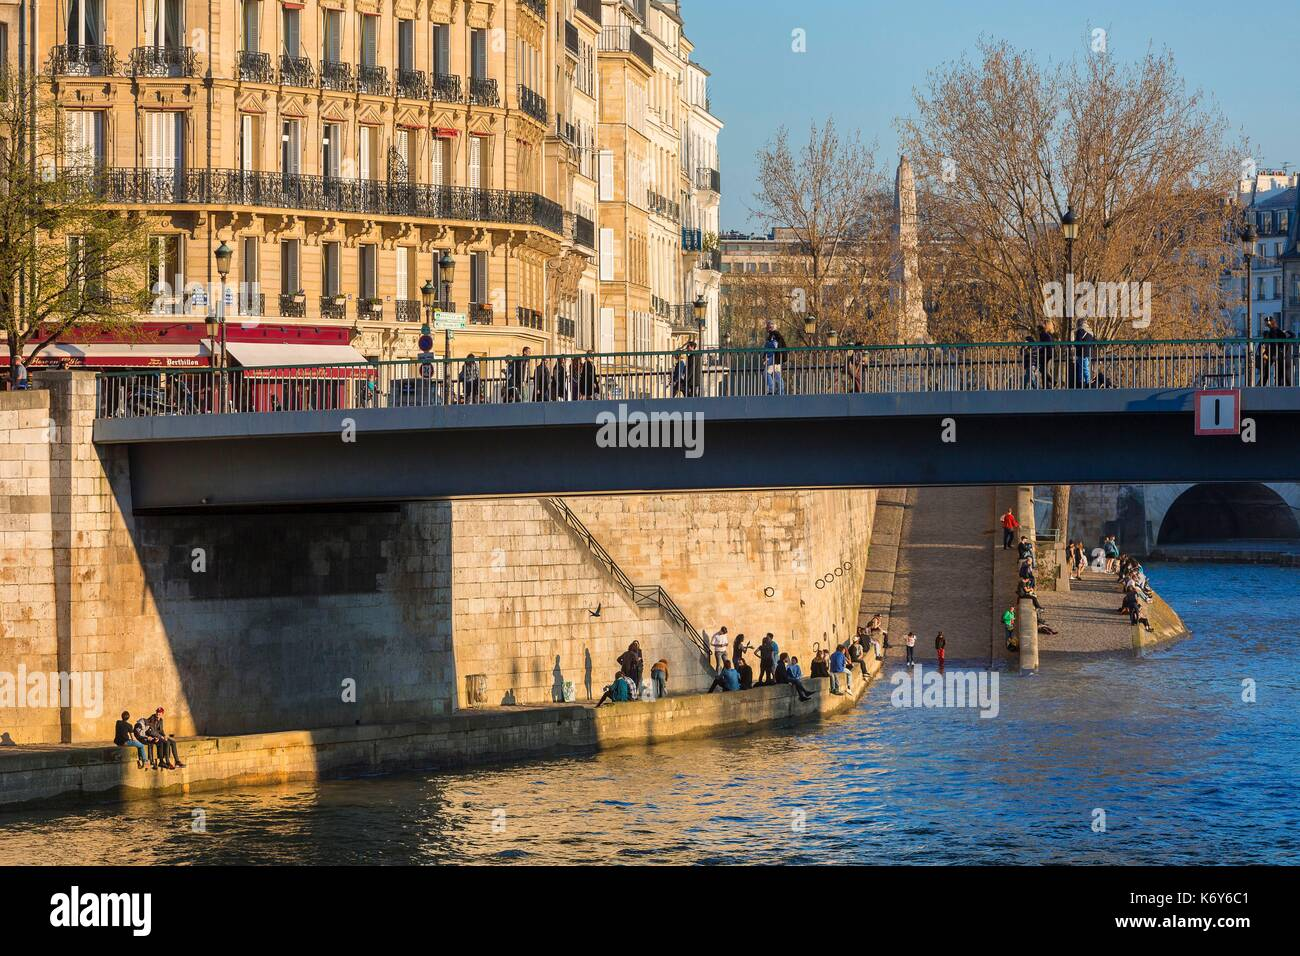 France, Paris, area listed as World Heritage by UNESCO, the Saint Louis bridge connecting the Cite island and Saint Louis island - Stock Image